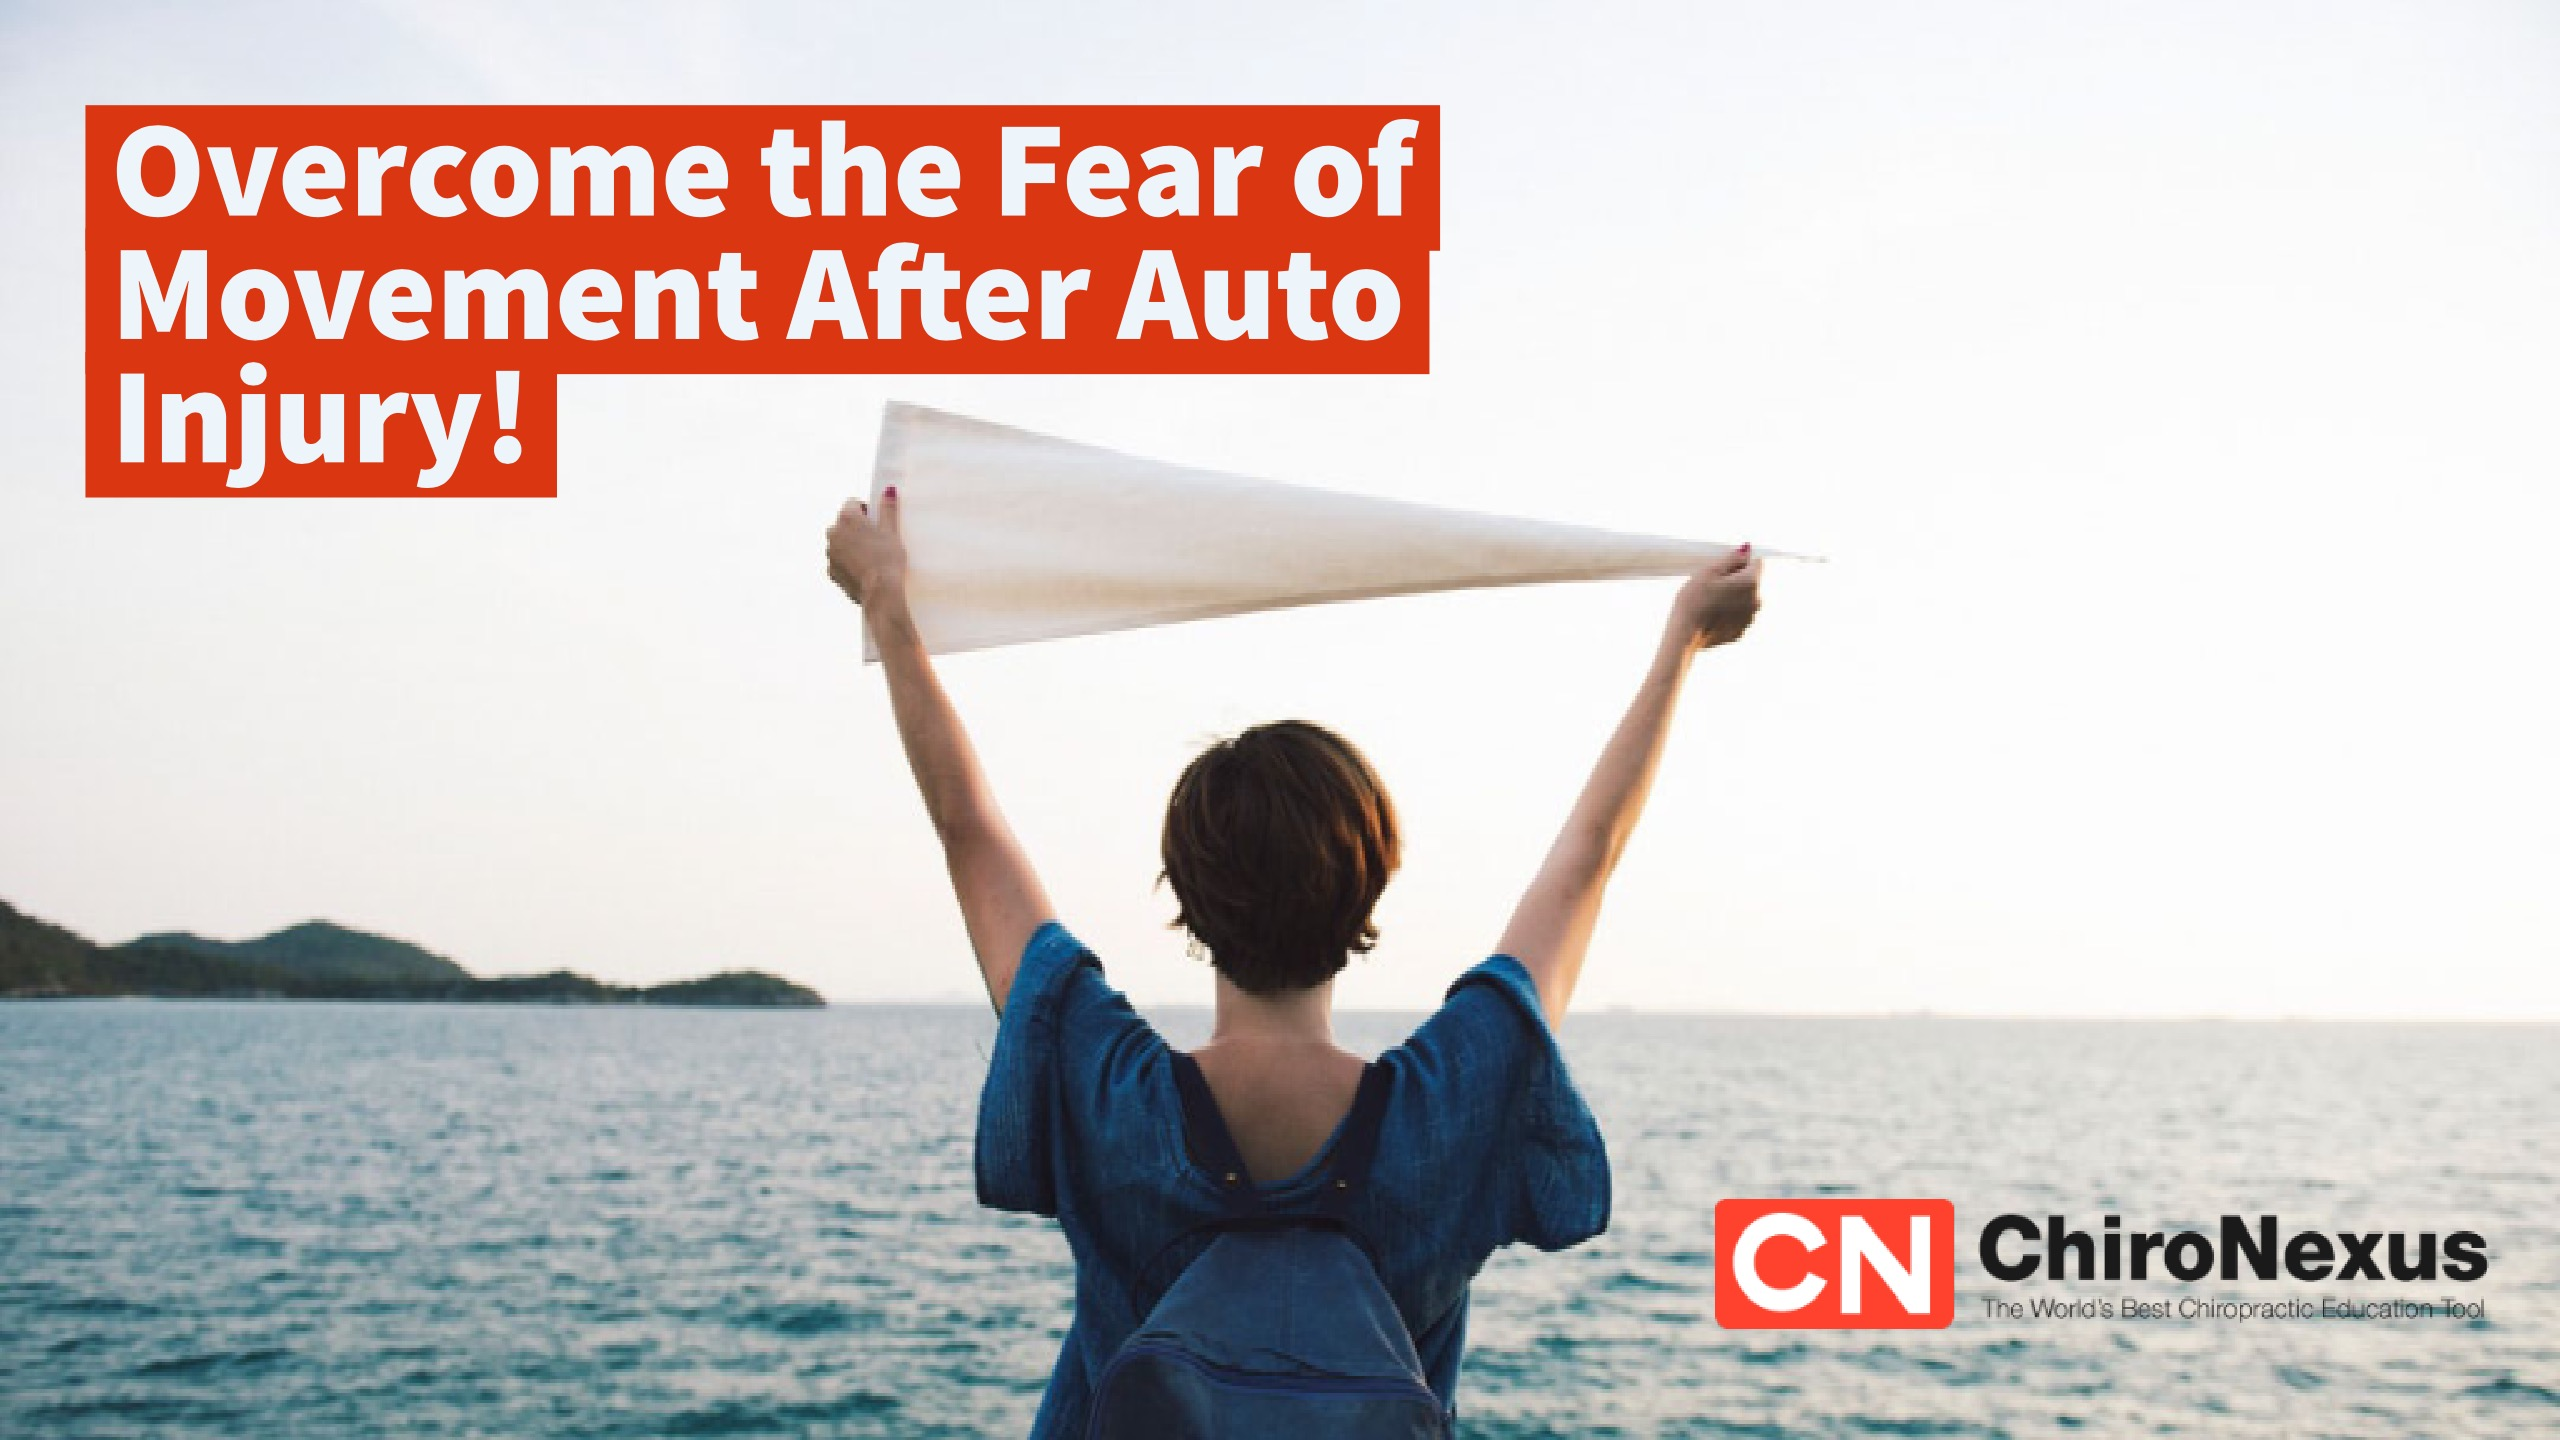 CH - Research Post - Fear of Movement After Auto Injury - 10.27.17